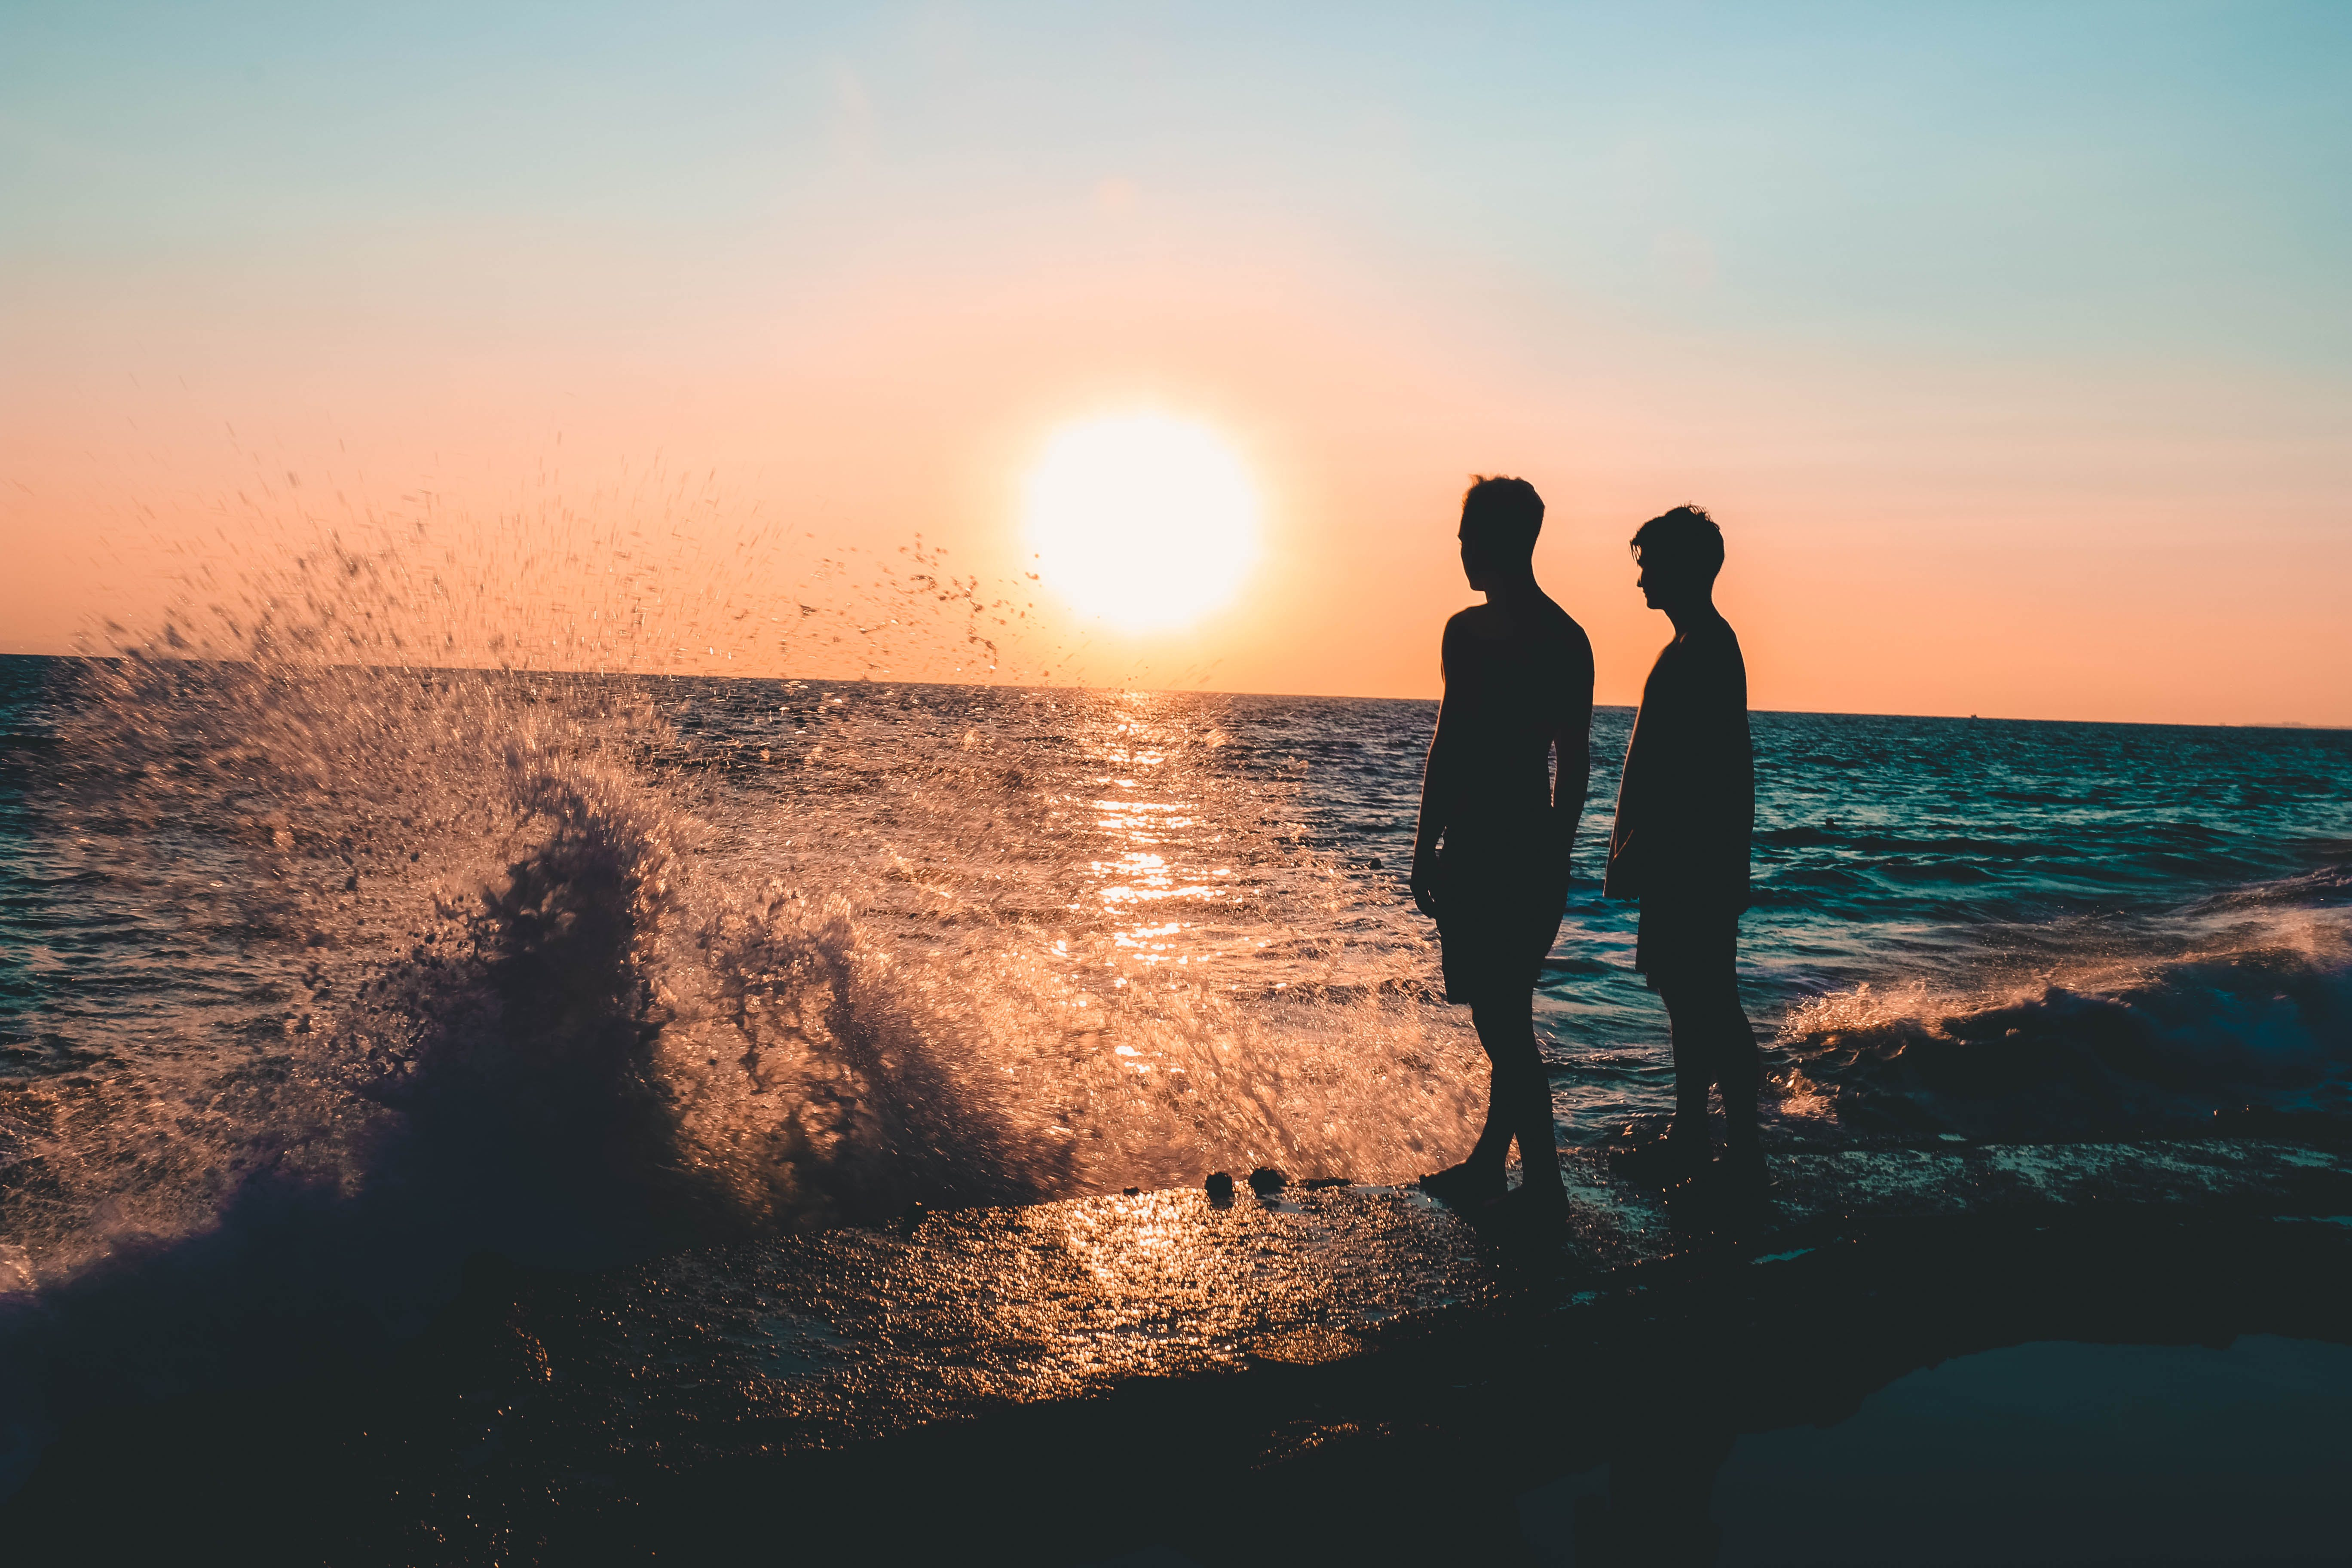 Two Men Standing on Seashore